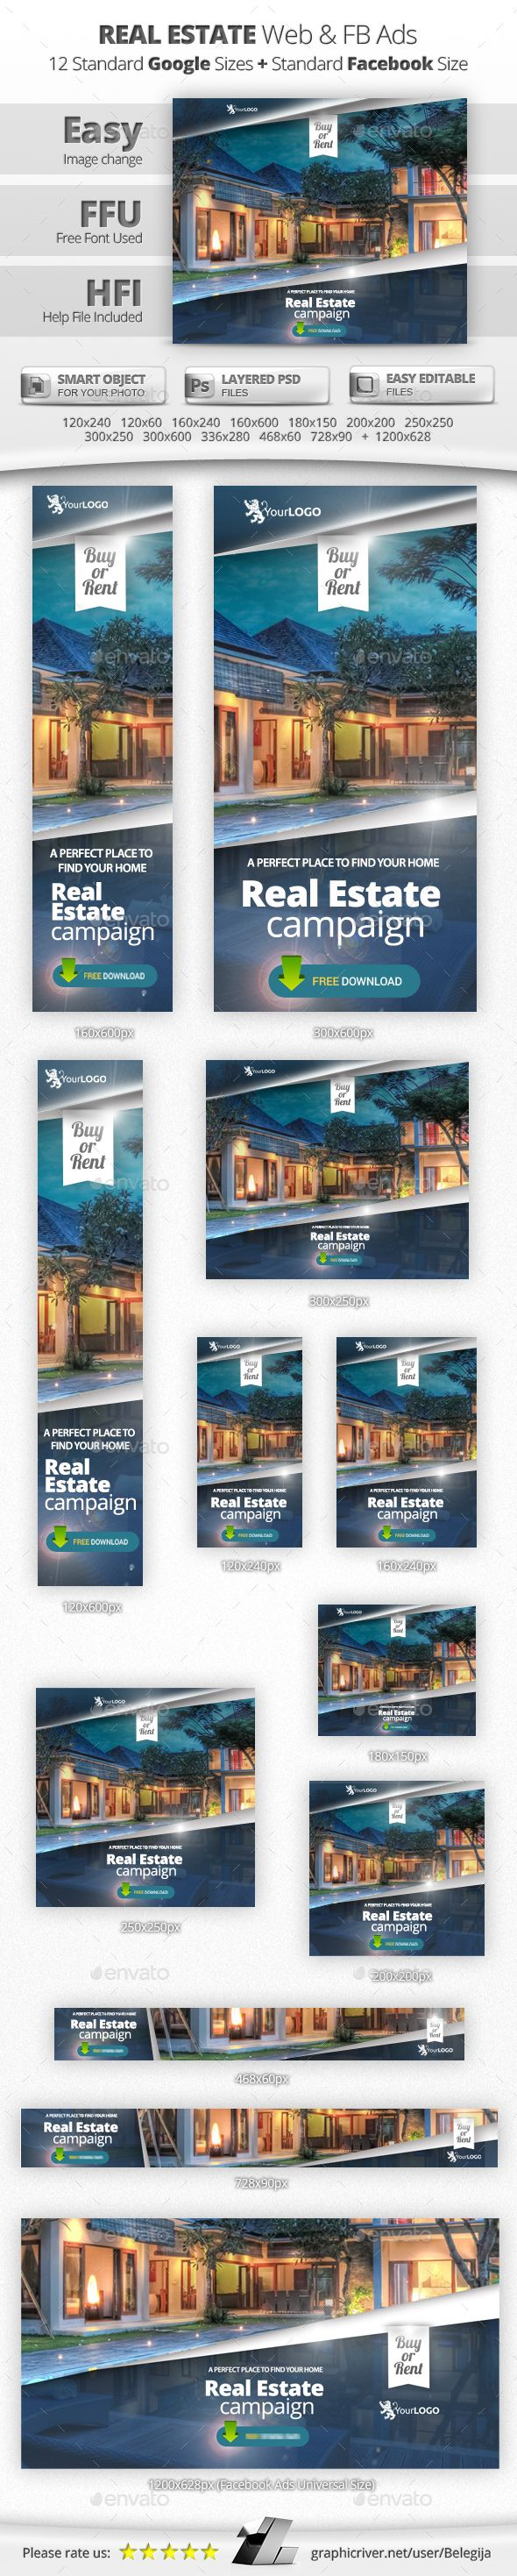 Real Estate Web & Facebook Banners — Photoshop PSD #web #marketing • Available here → https://graphicriver.net/item/real-estate-web-facebook-banners/13946481?ref=pxcr